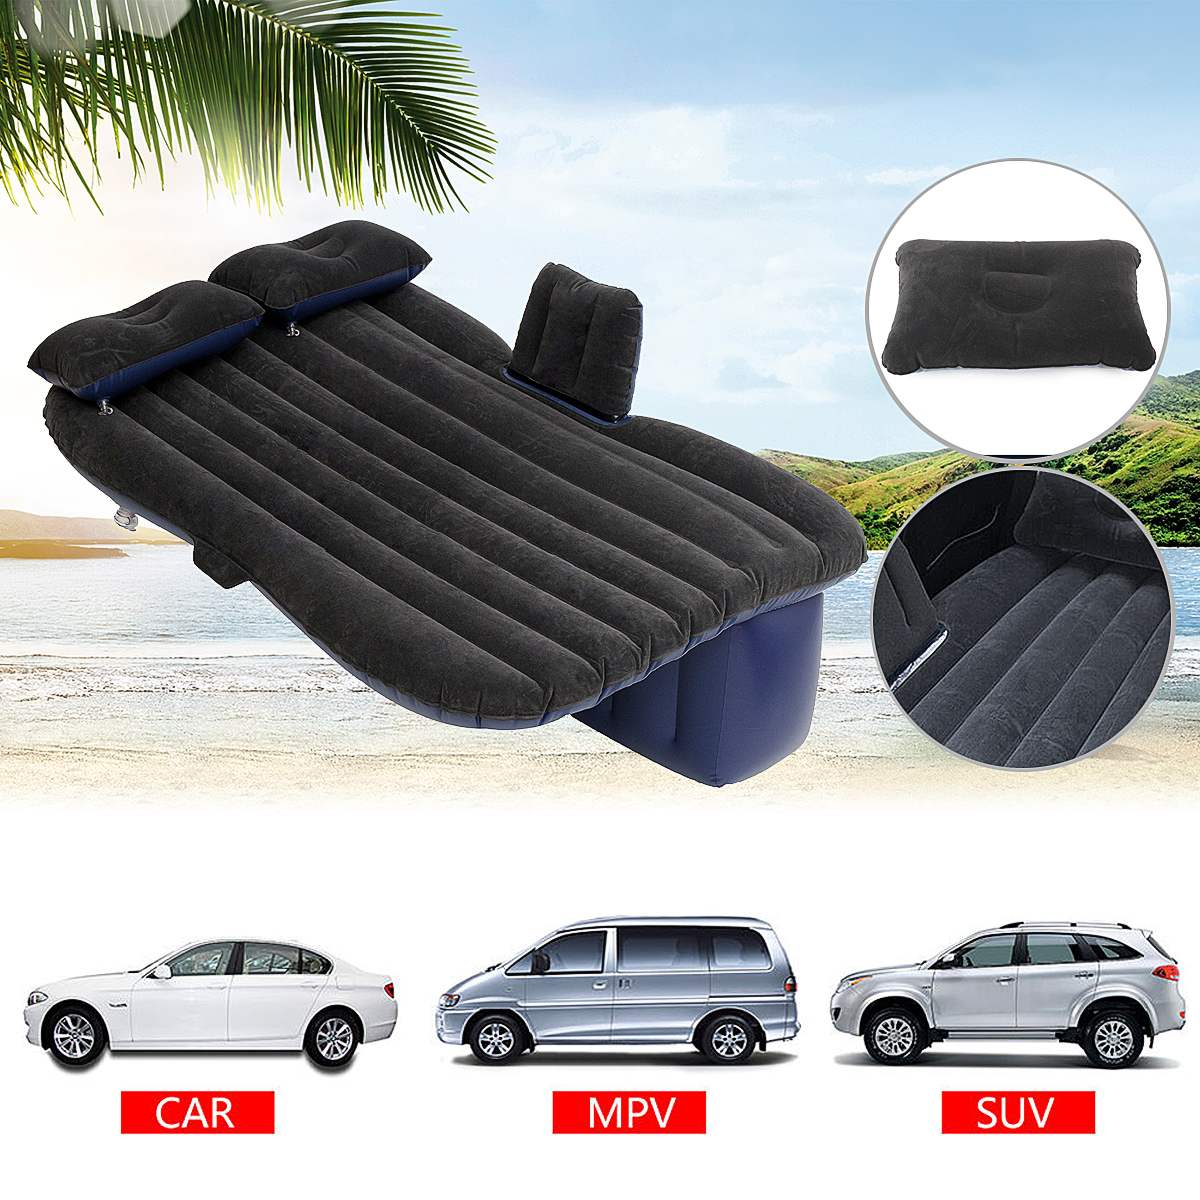 Flocking Cloth Car Back Seat Cover Air Mattress Travel Bed Inflatable Mattress Air Bed Inflatable Bed Travel kit Camping Mat car inflatable mattress car shock bed on board flocking inflatable bed separate type air cushion bed car split car bed